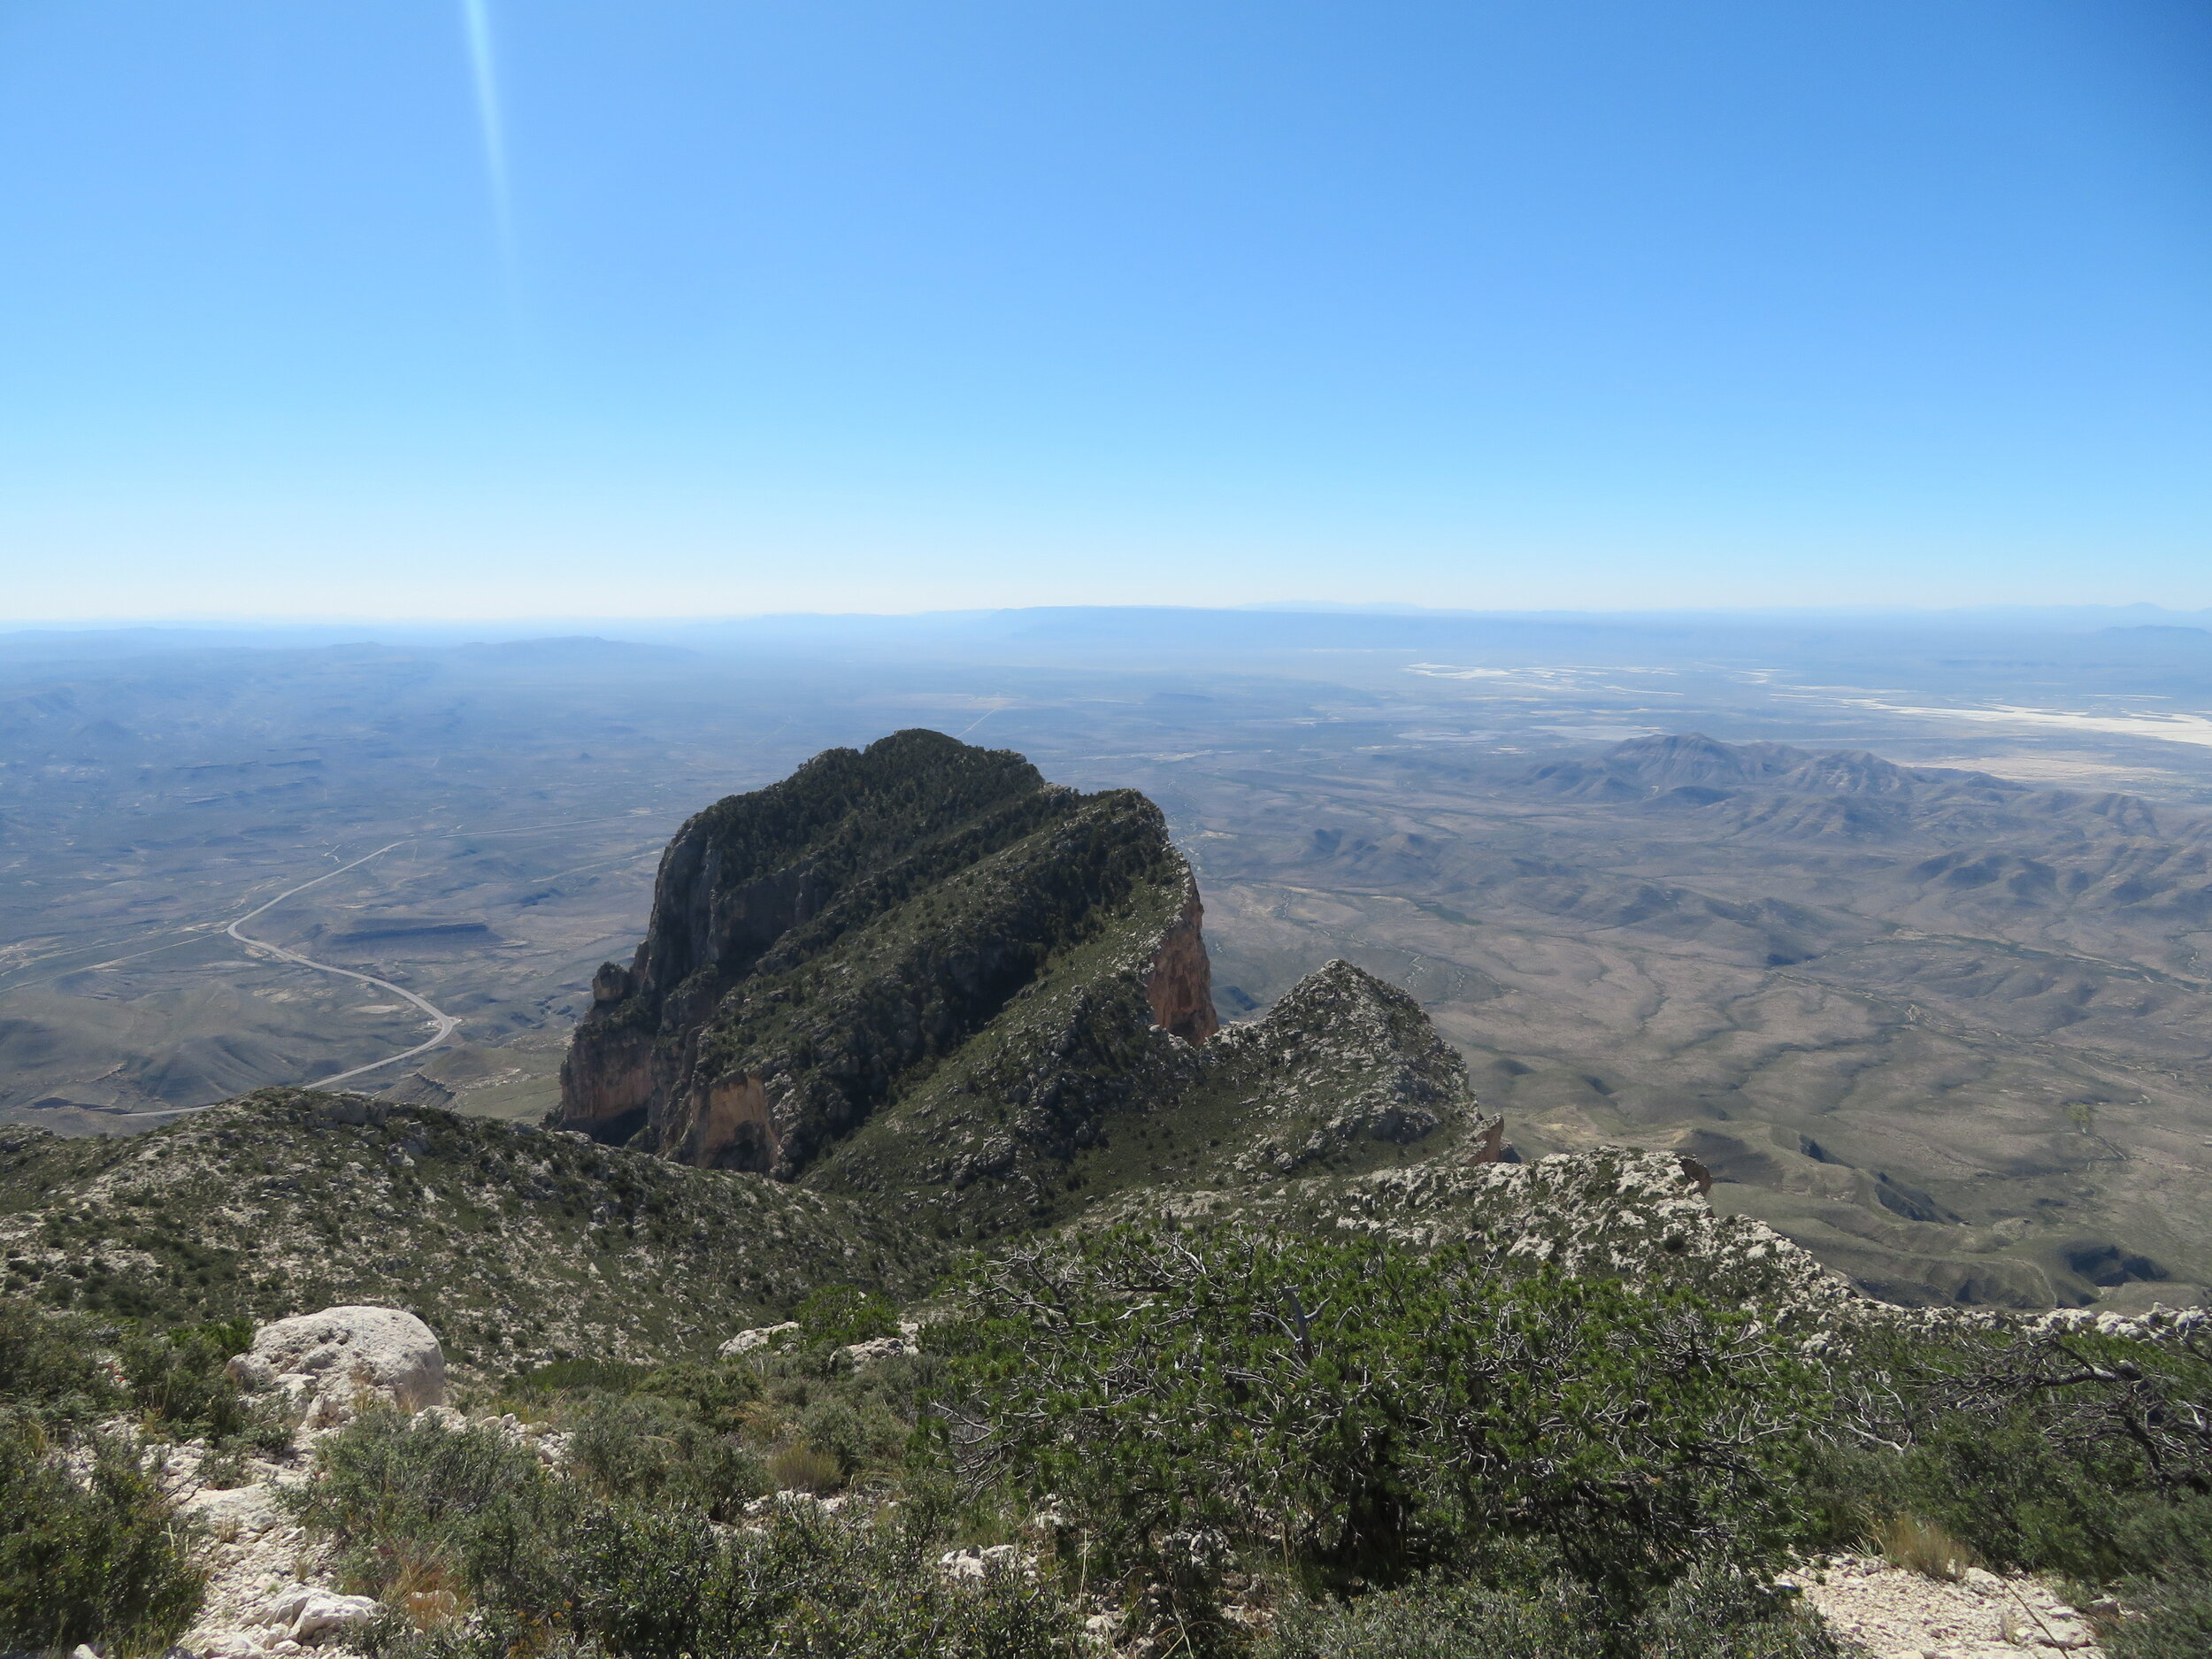 El Capitan certainly looked different from this vantage point.